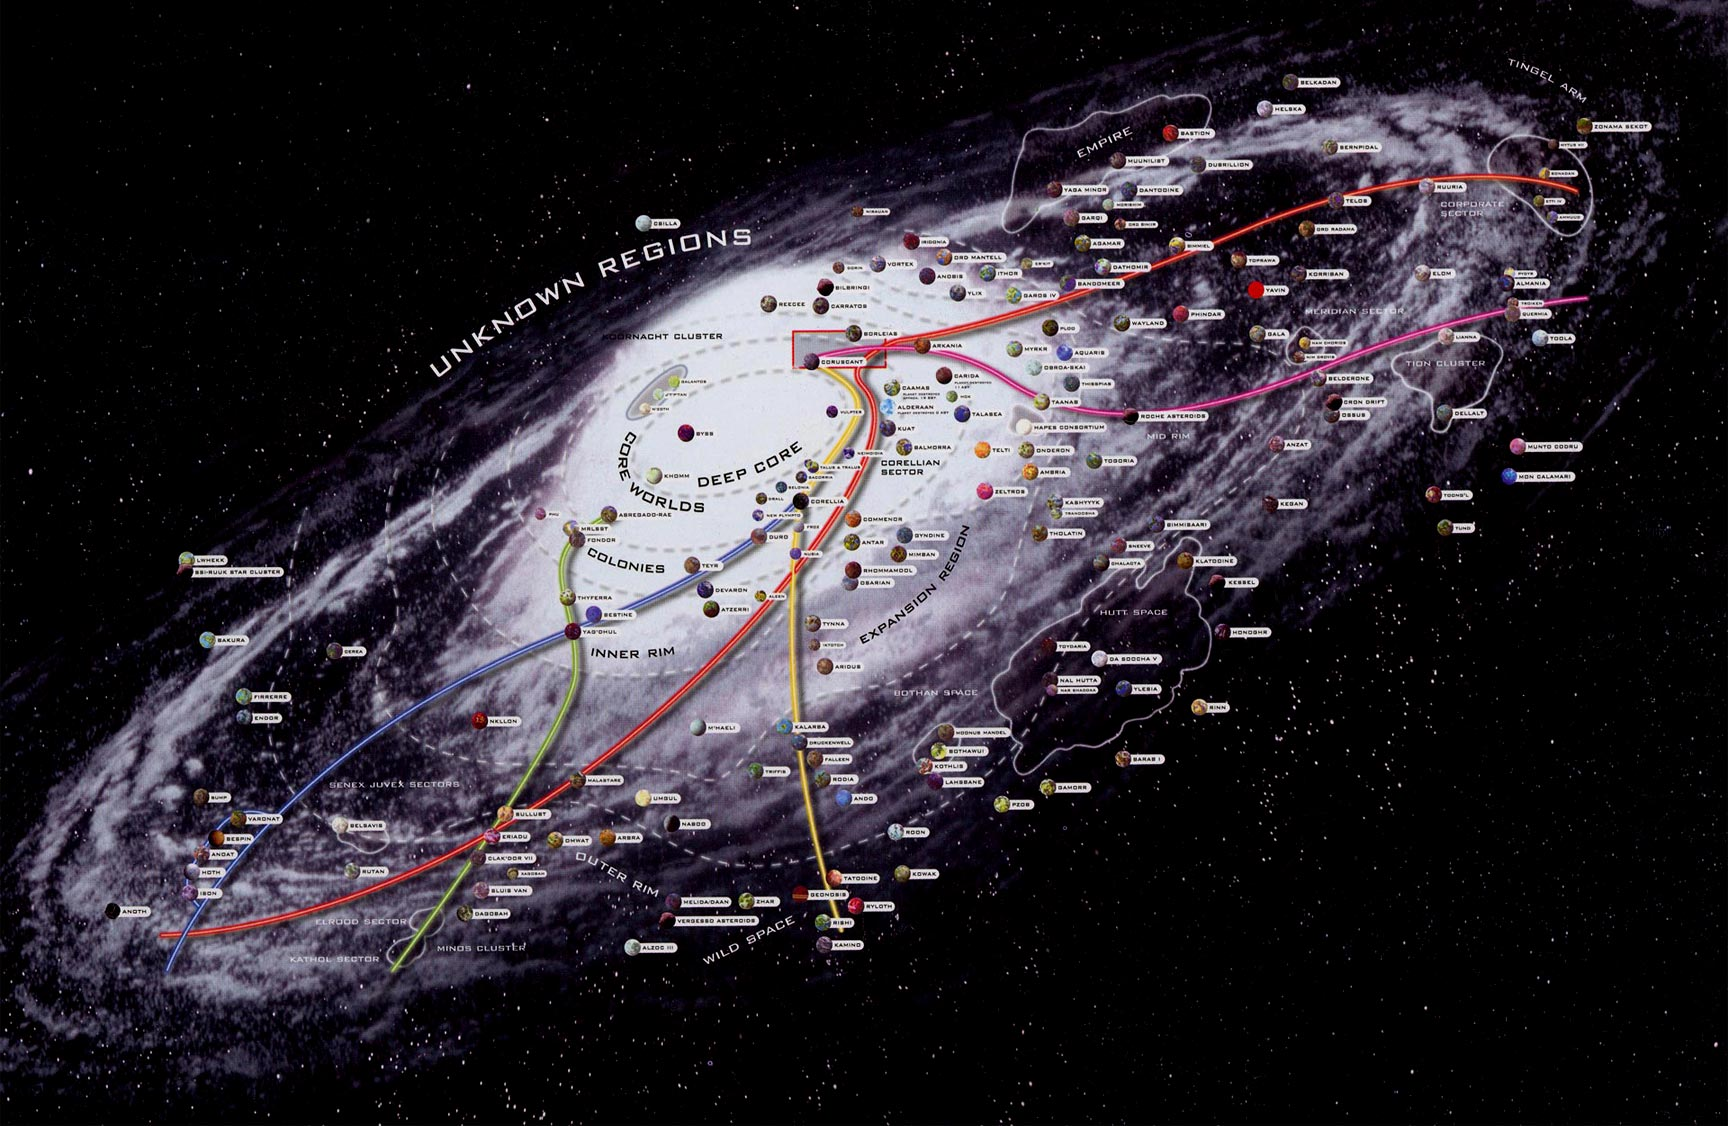 Star Wars Galaxy Map » Fanboy.com